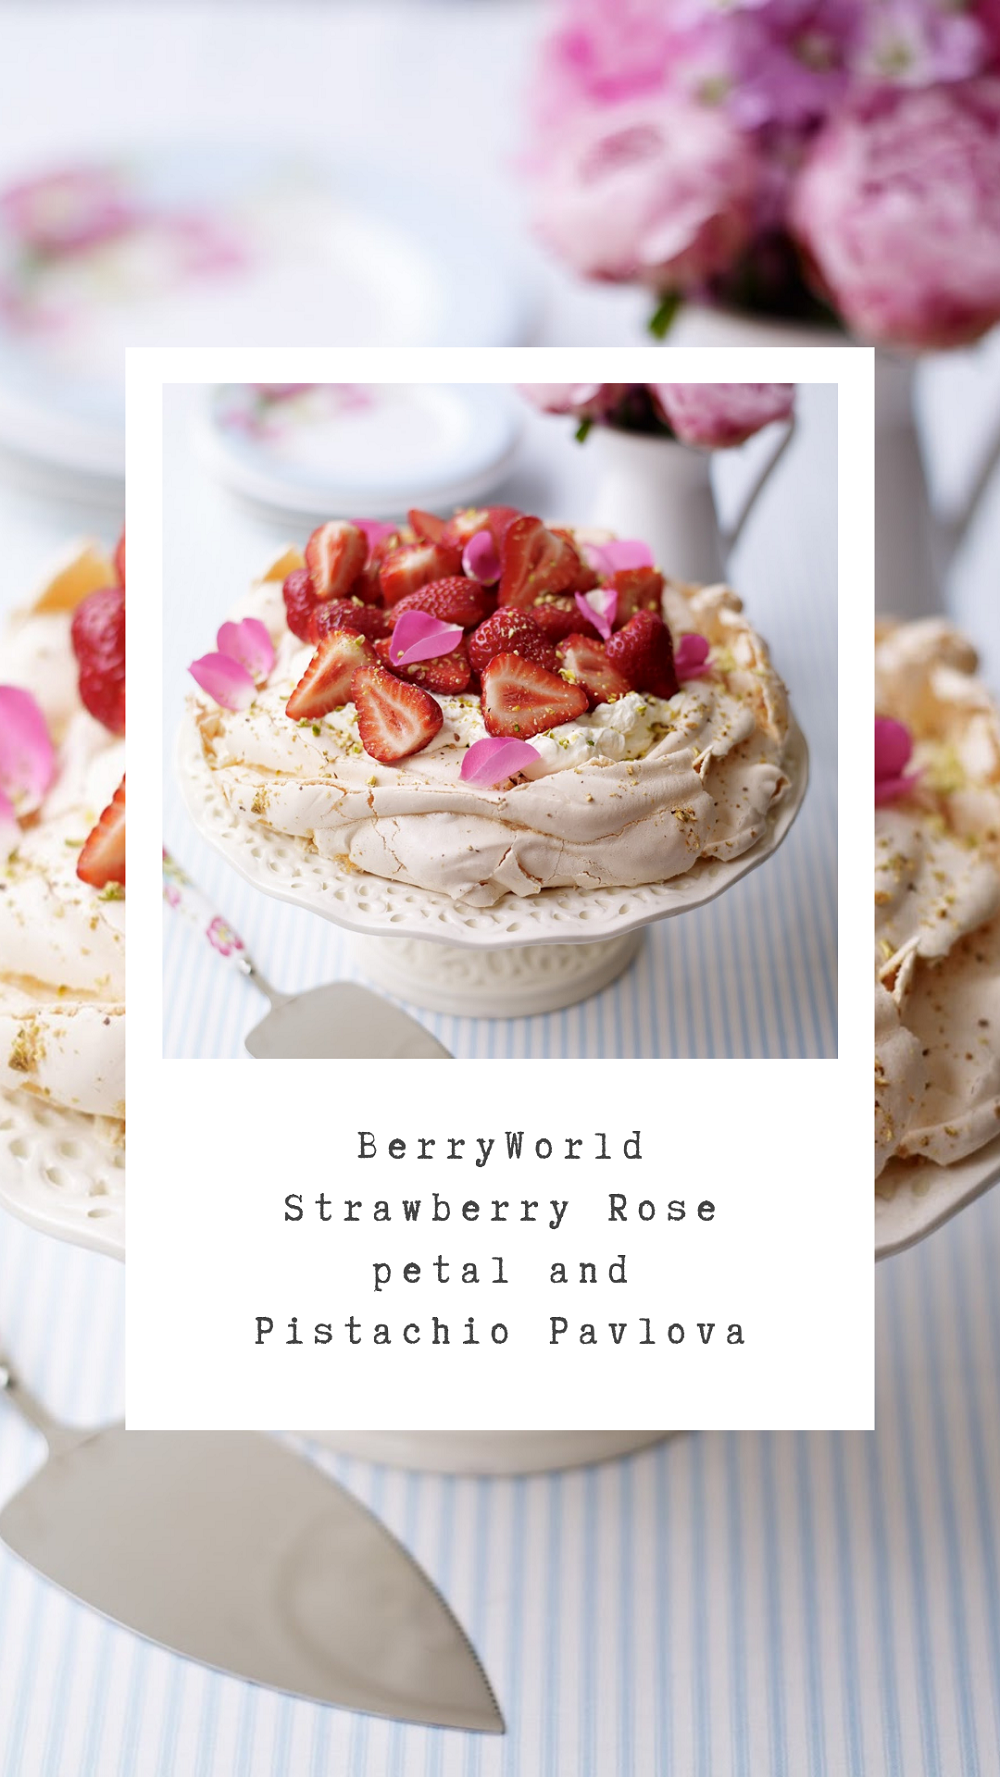 10 Afternoon Tea Recipes For Dessert Day: Weekly Linky